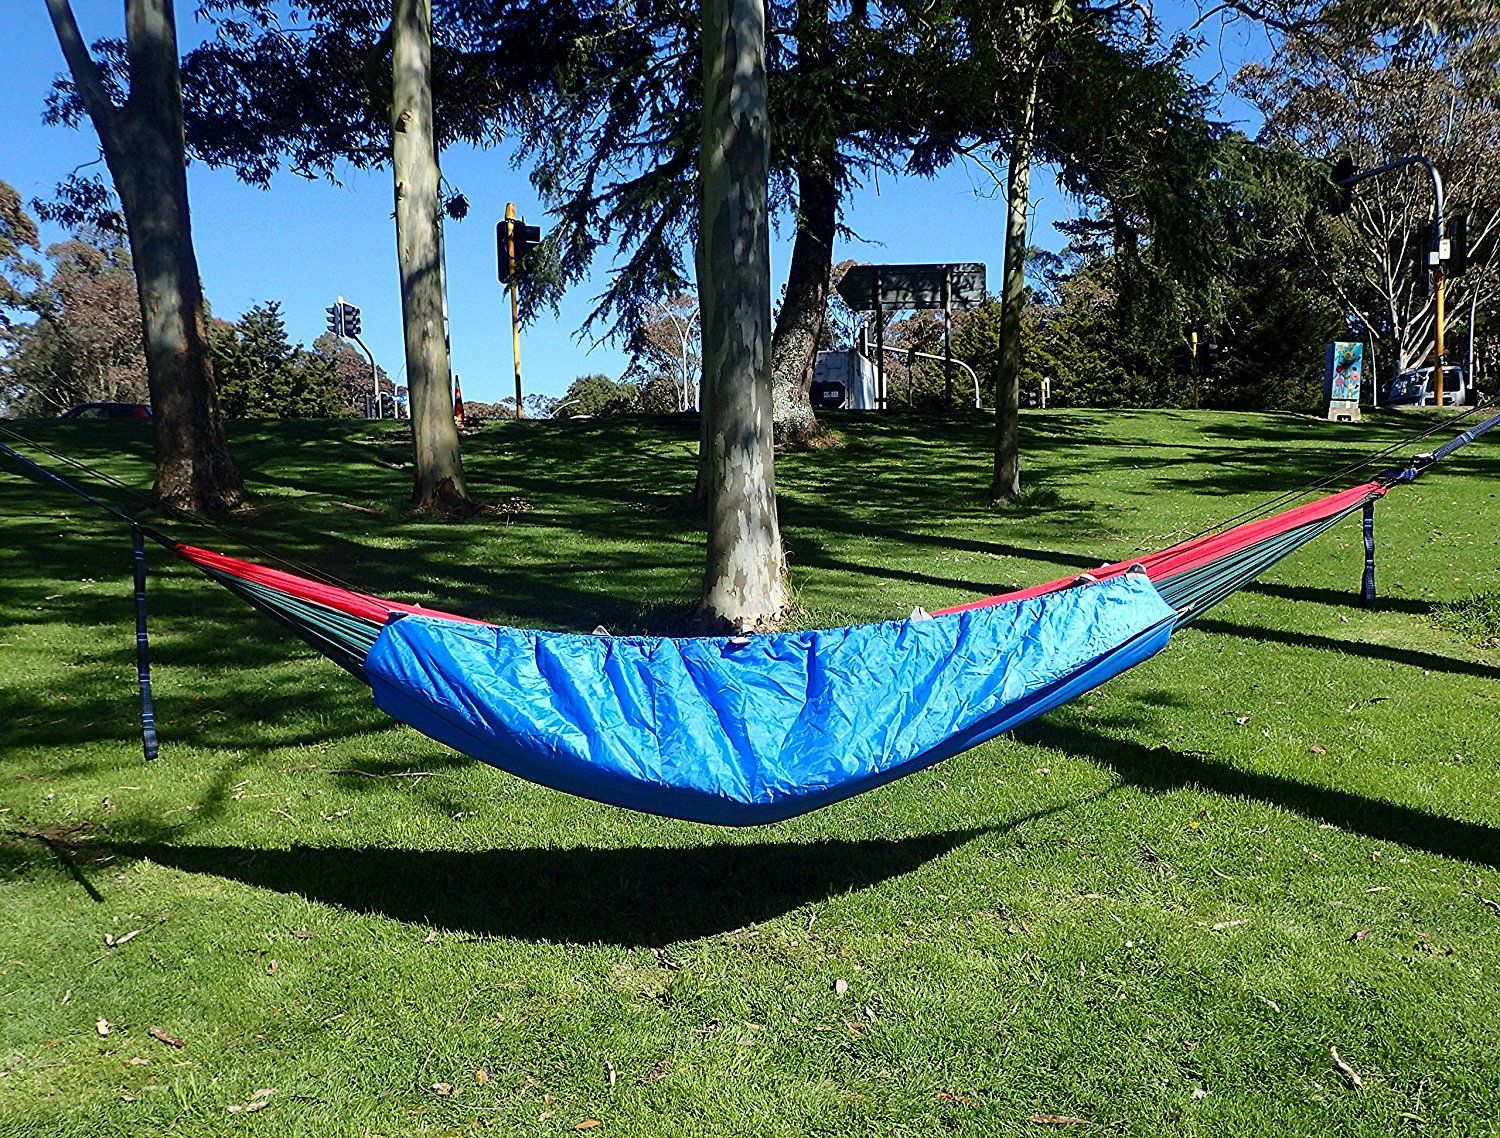 hammock free field grass daylight nature light blanket photo pixel max